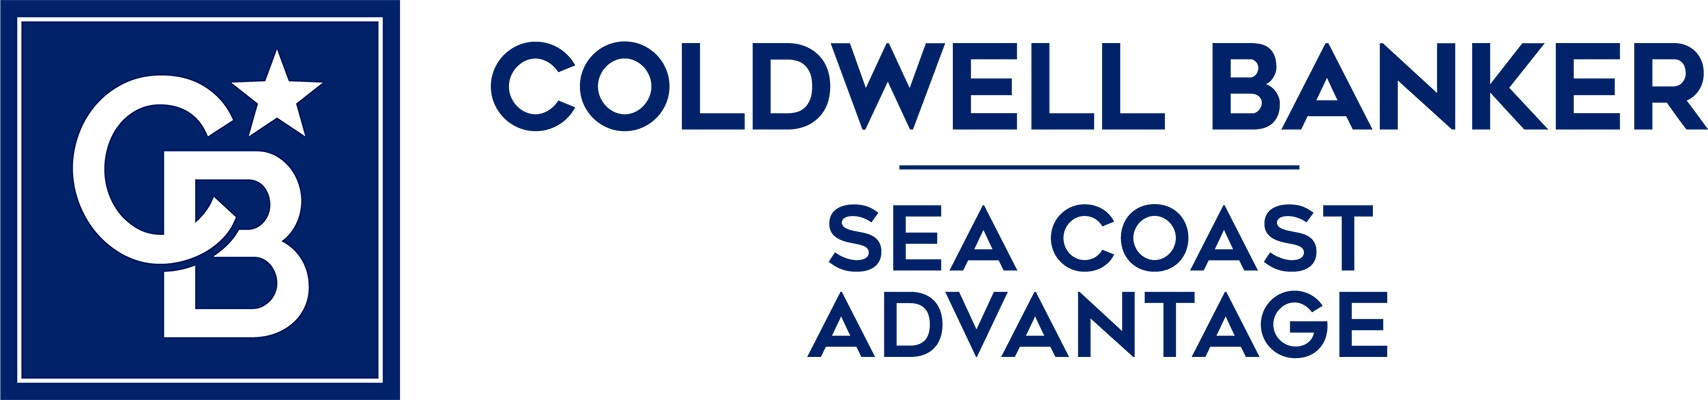 Christy Register - Coldwell Banker Sea Coast Advantage Realty